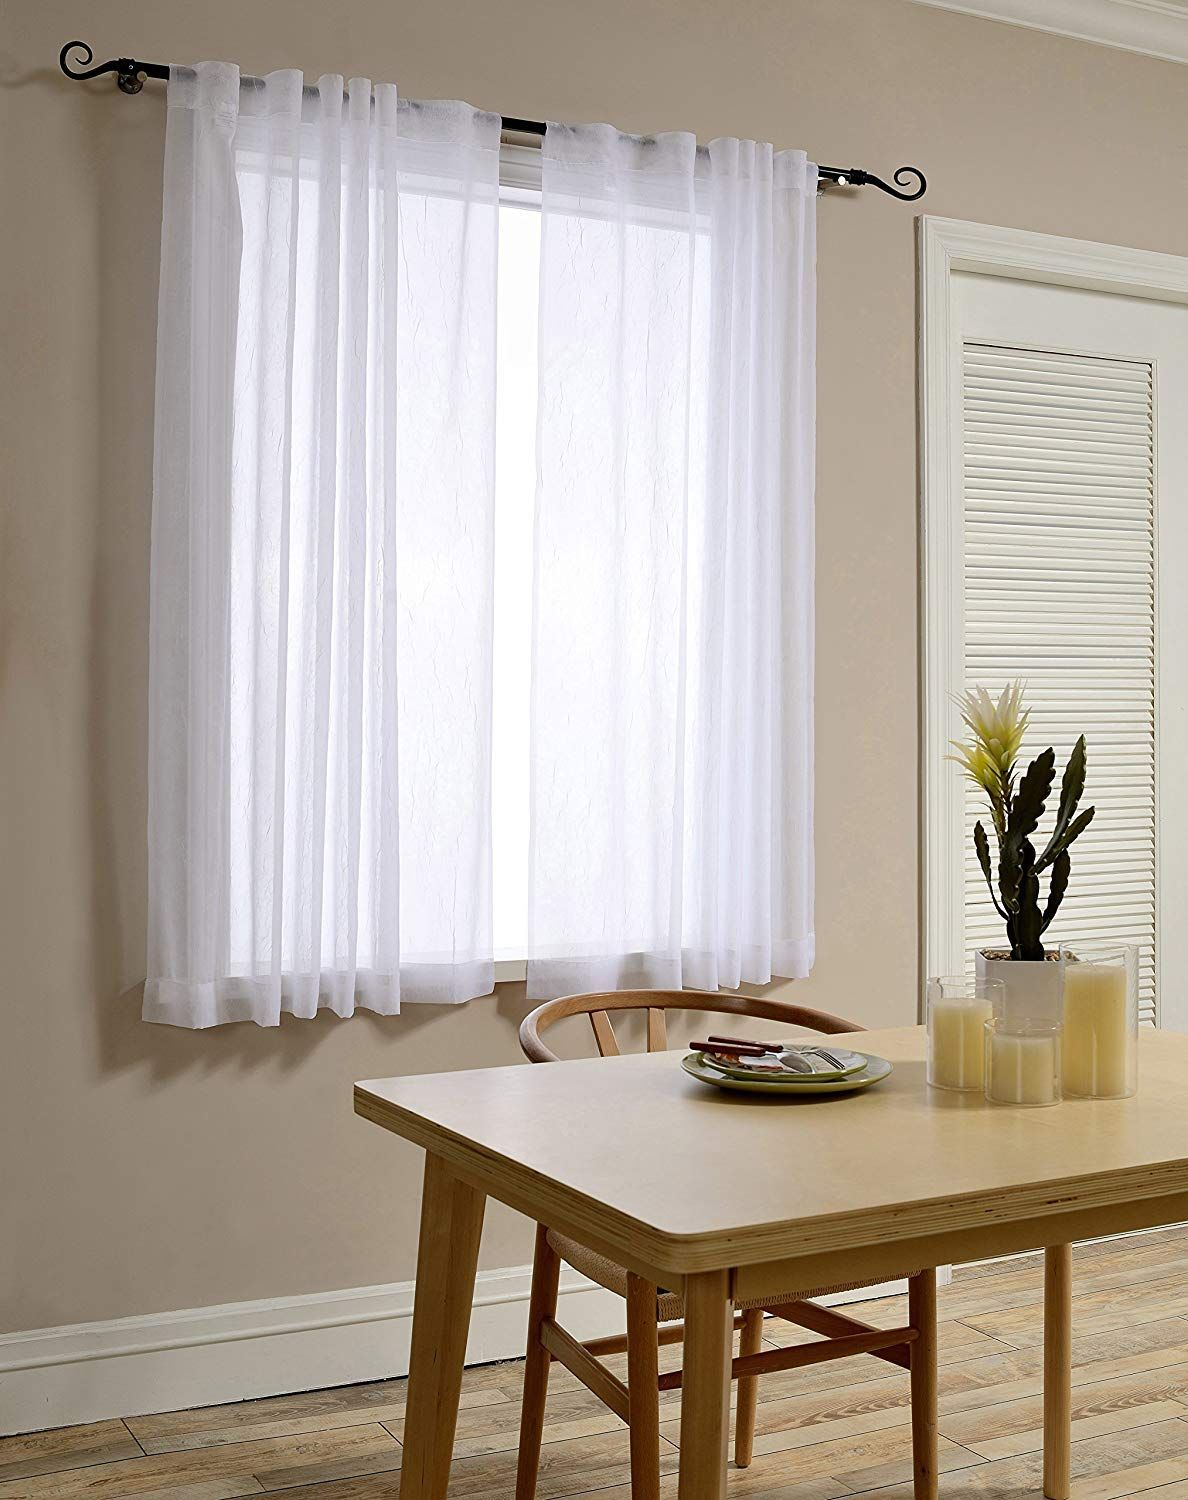 Sheer Curtain Panels Ease Bedding With Style Sheer Curtain